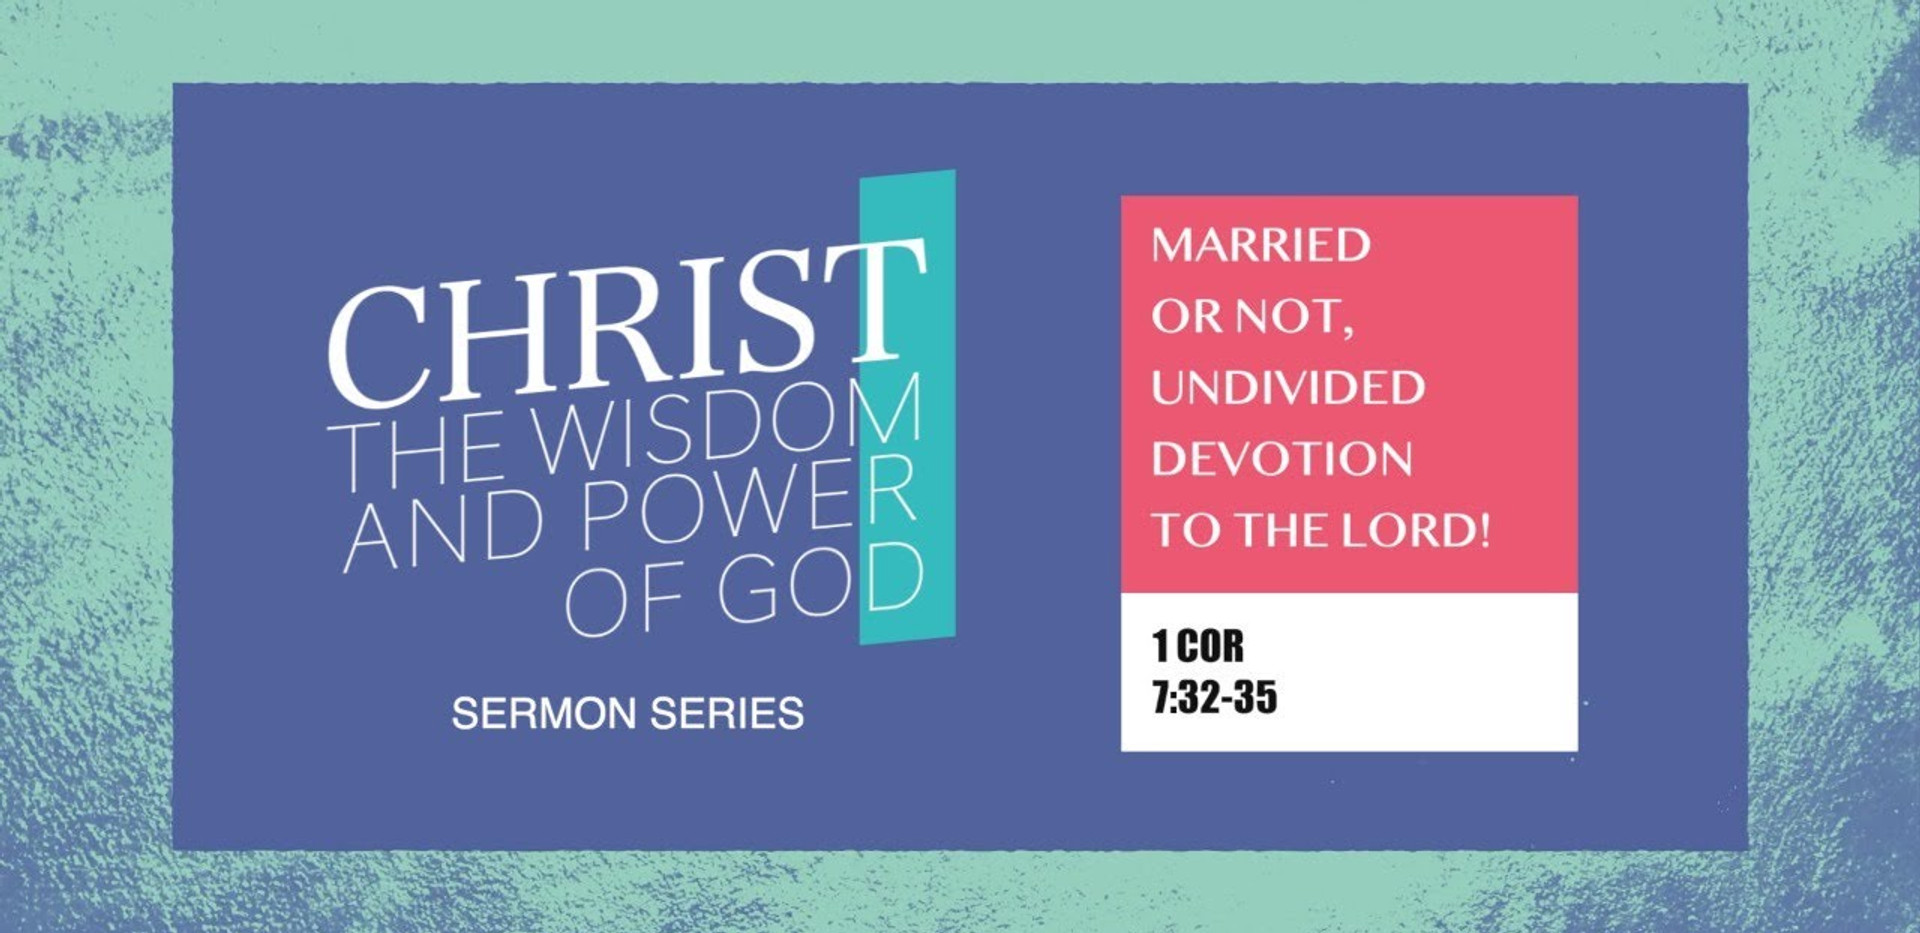 Married or Not, Undivided Devotion to the Lord!